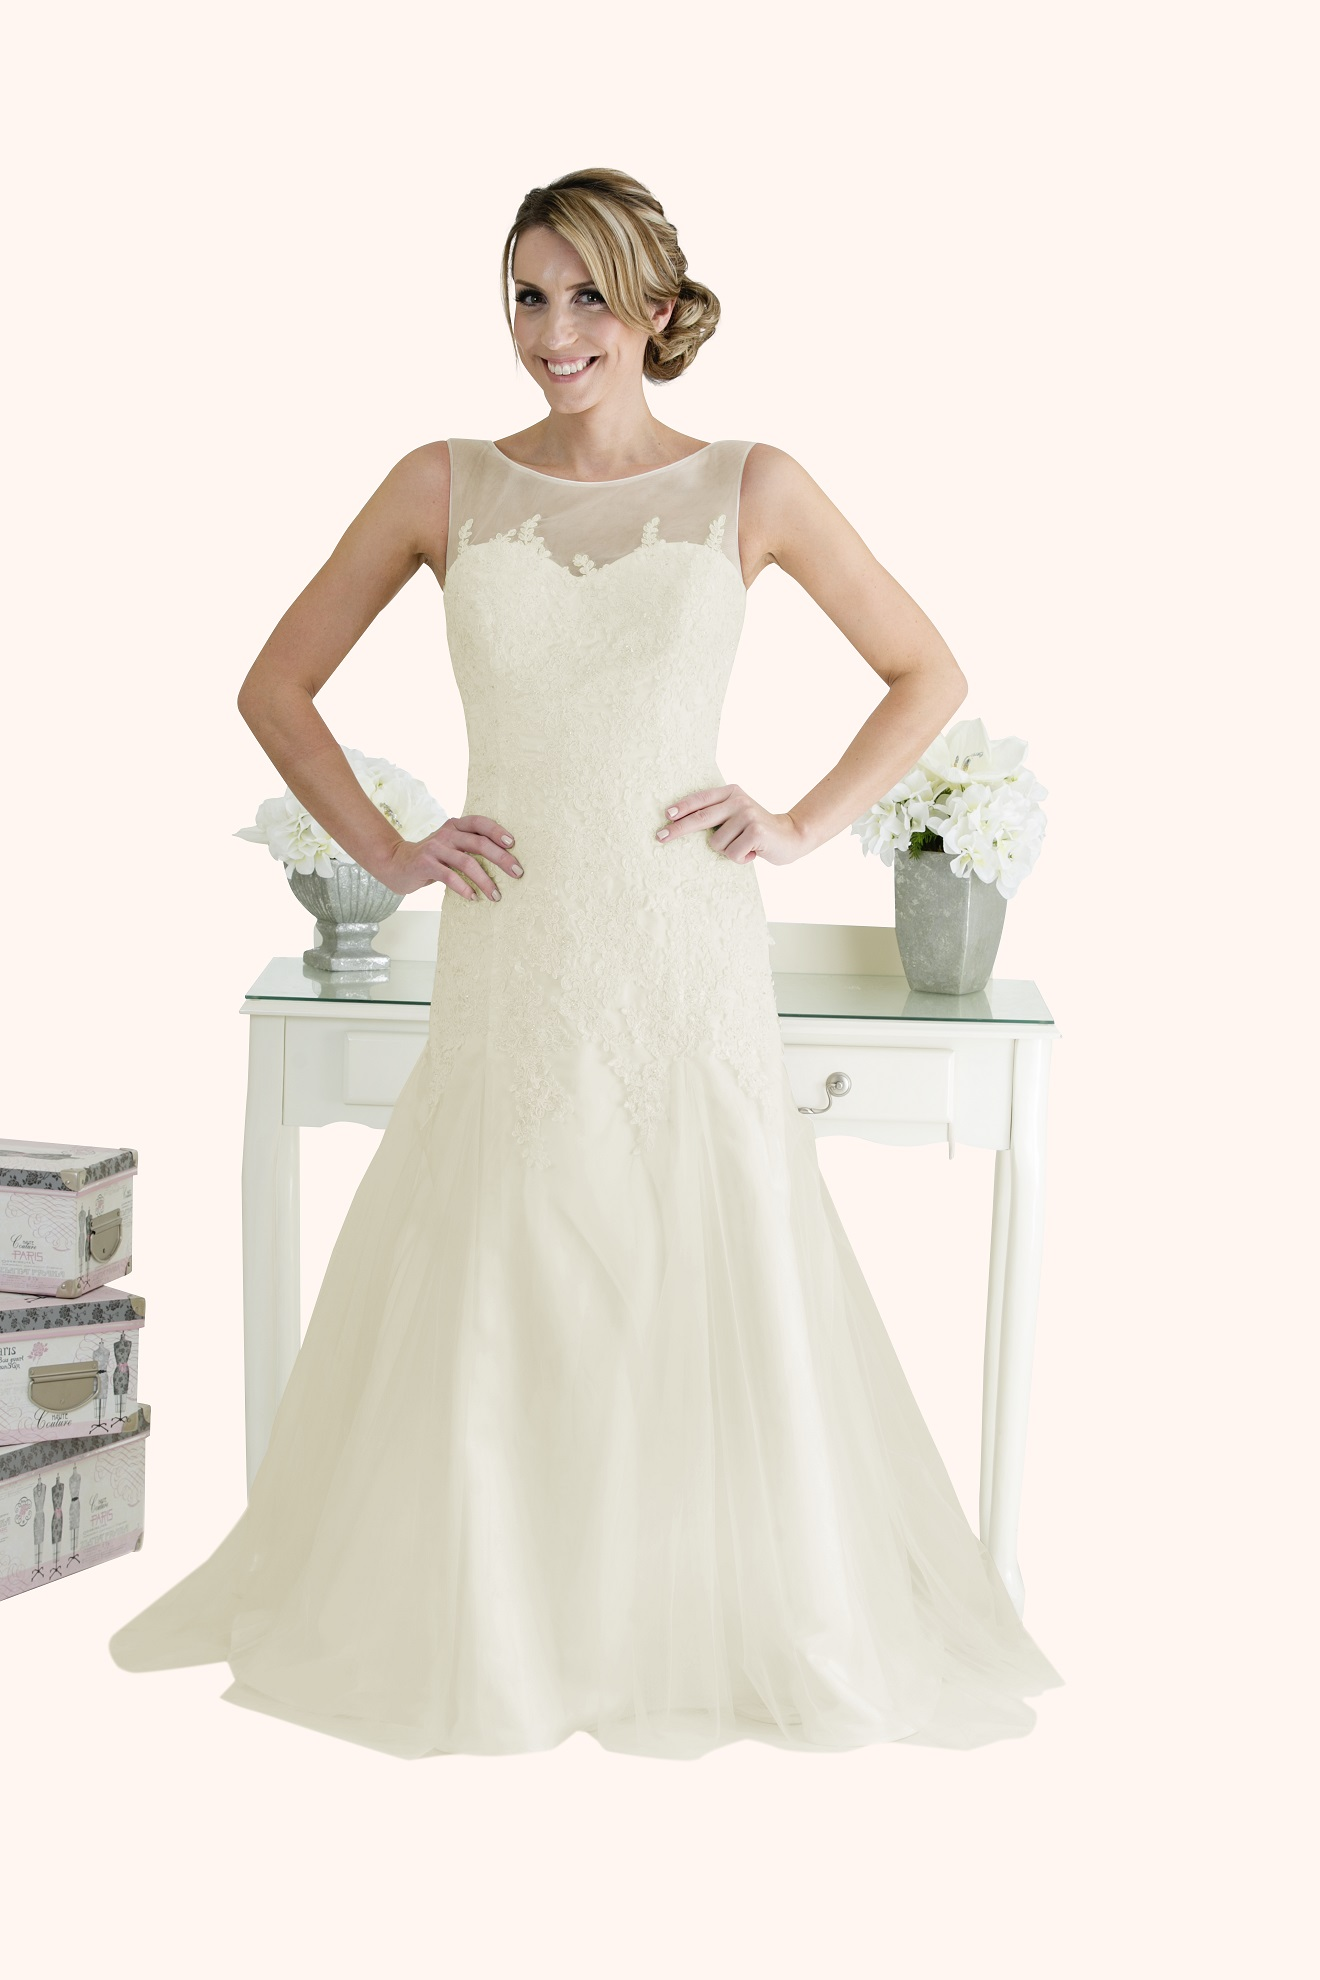 Millie - Lace and Tulle Fit and Flare Wedding Dress